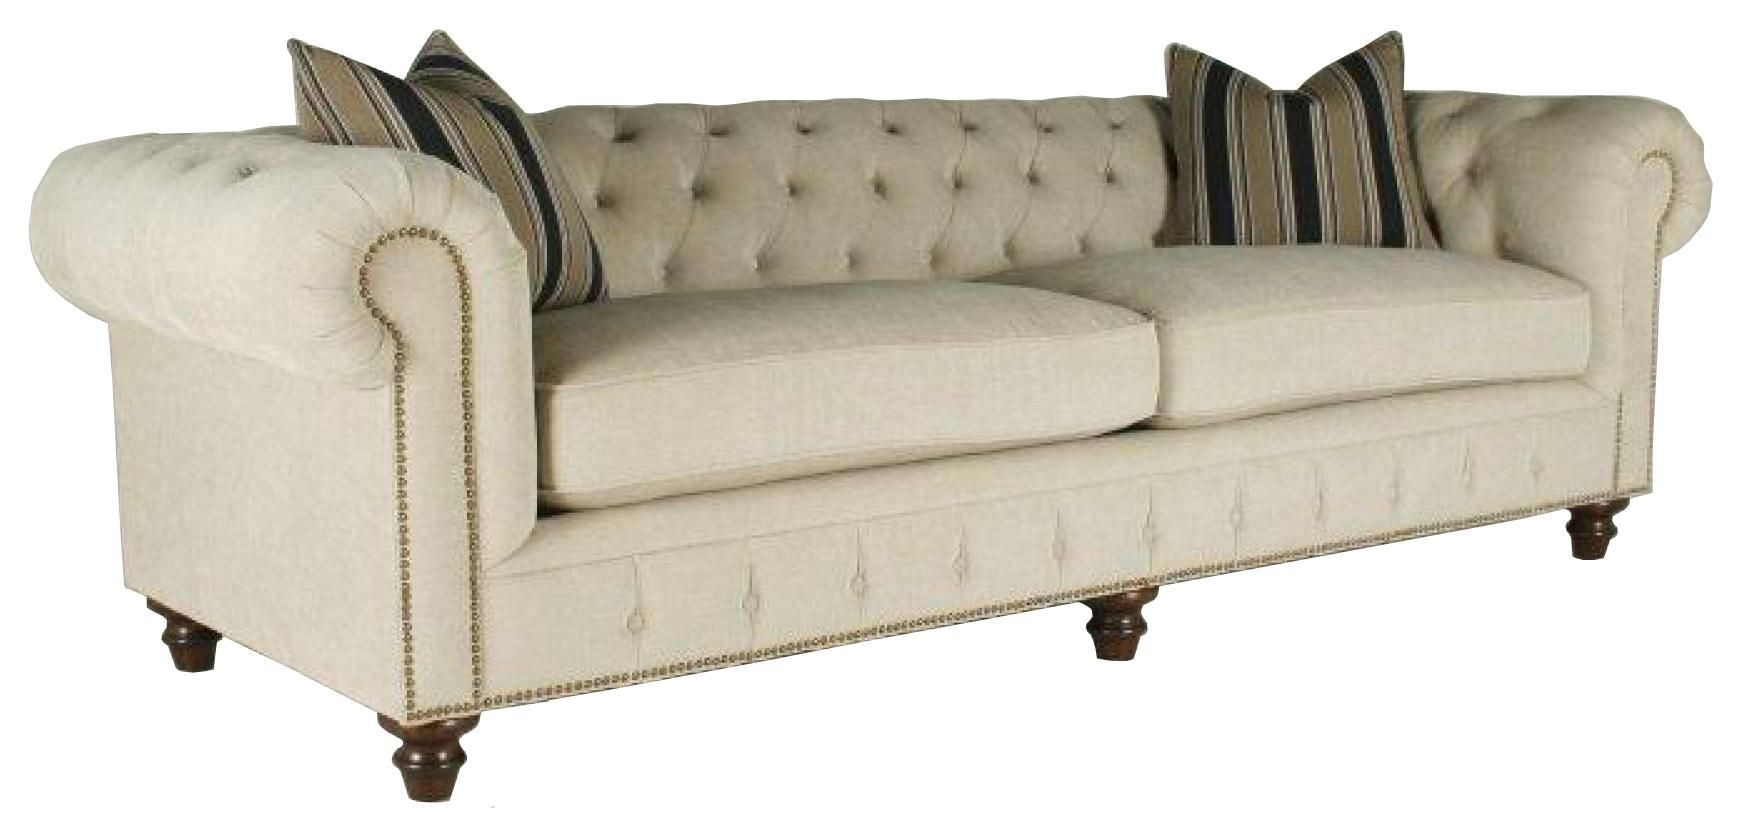 Shea Shea Sofa Couch With Rolled Arms And Tufted Seat Cushions By Rachlin  Classics At Olindeu0027s Furniture